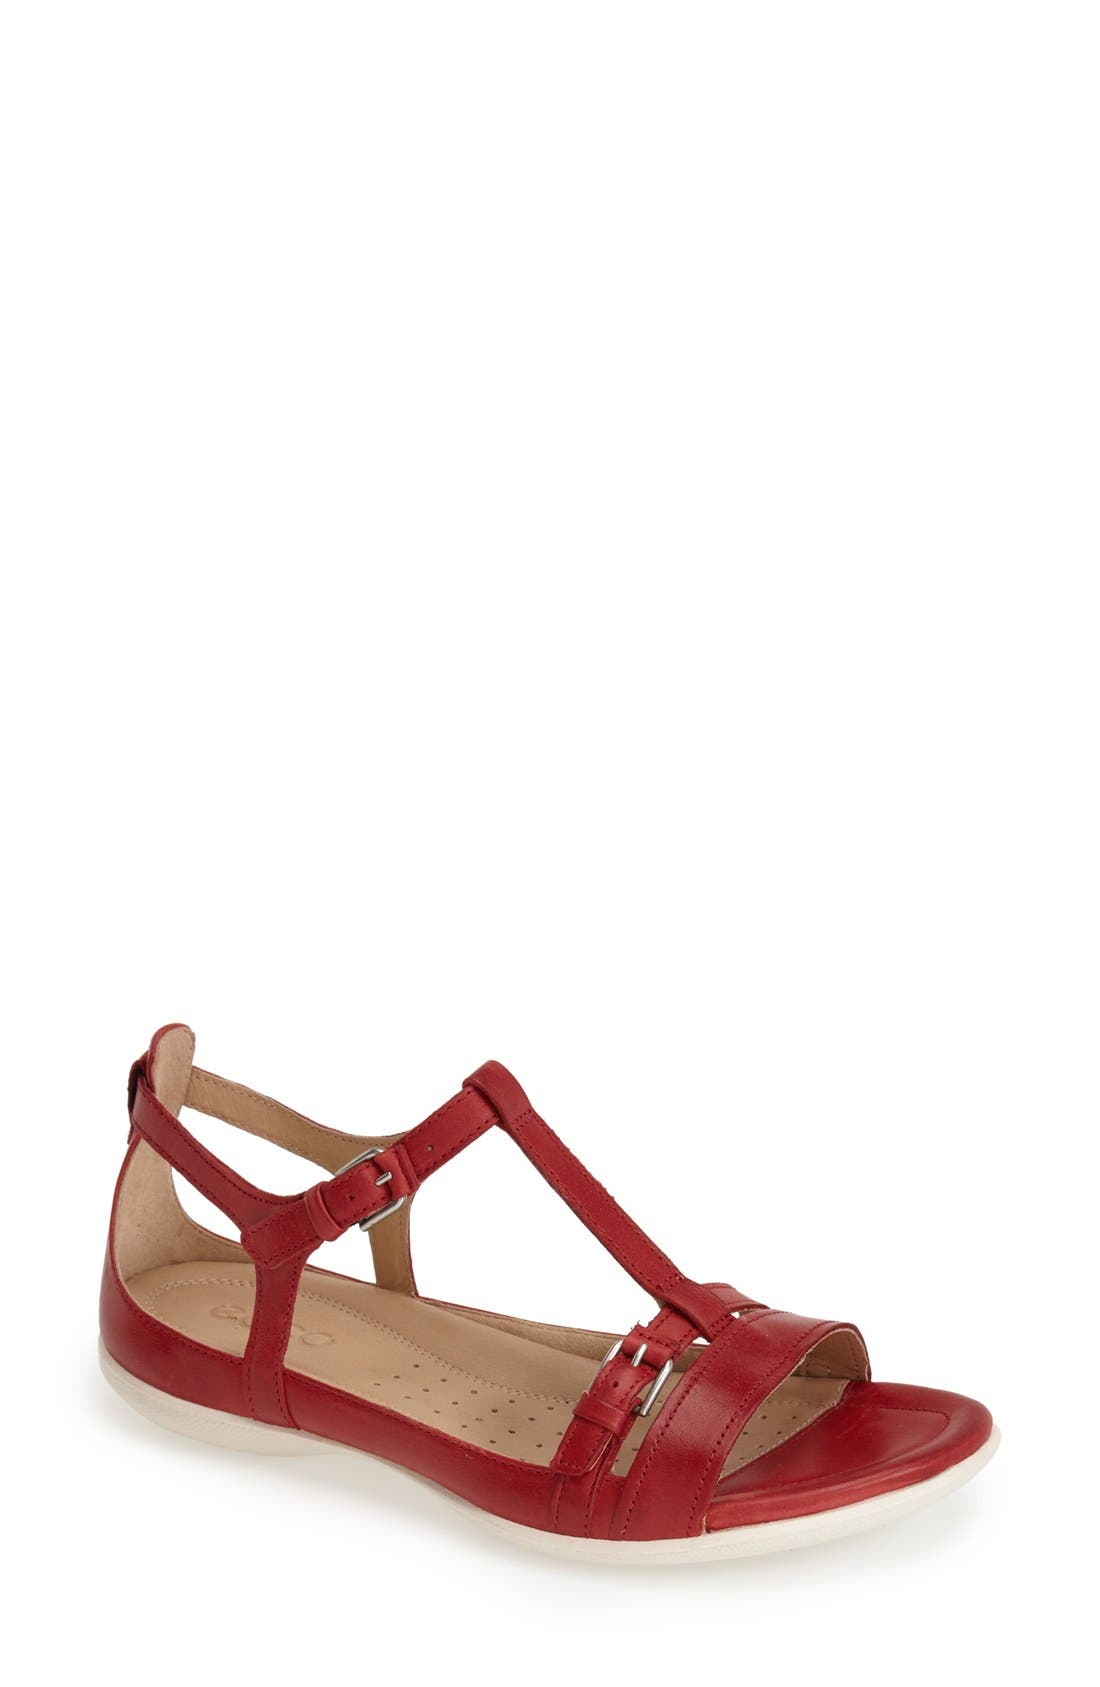 Alternate Image 1 Selected - ECCO 'Flash' T-Strap Sandal (Special Purchase)